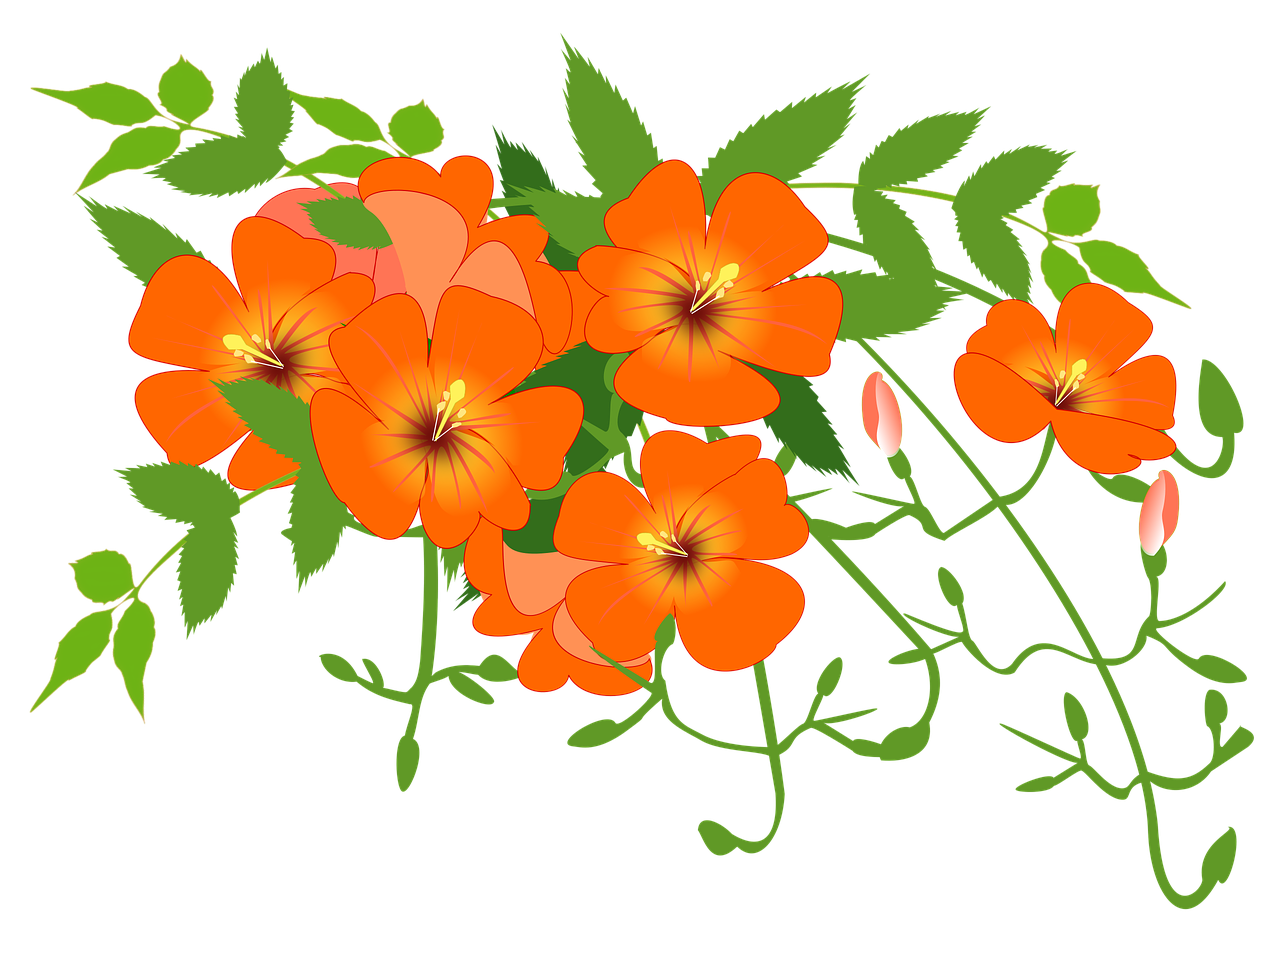 Vine flower clipart clip stock Chinese Trumpet Vine Flower Vine PNG Image - Picpng clip stock